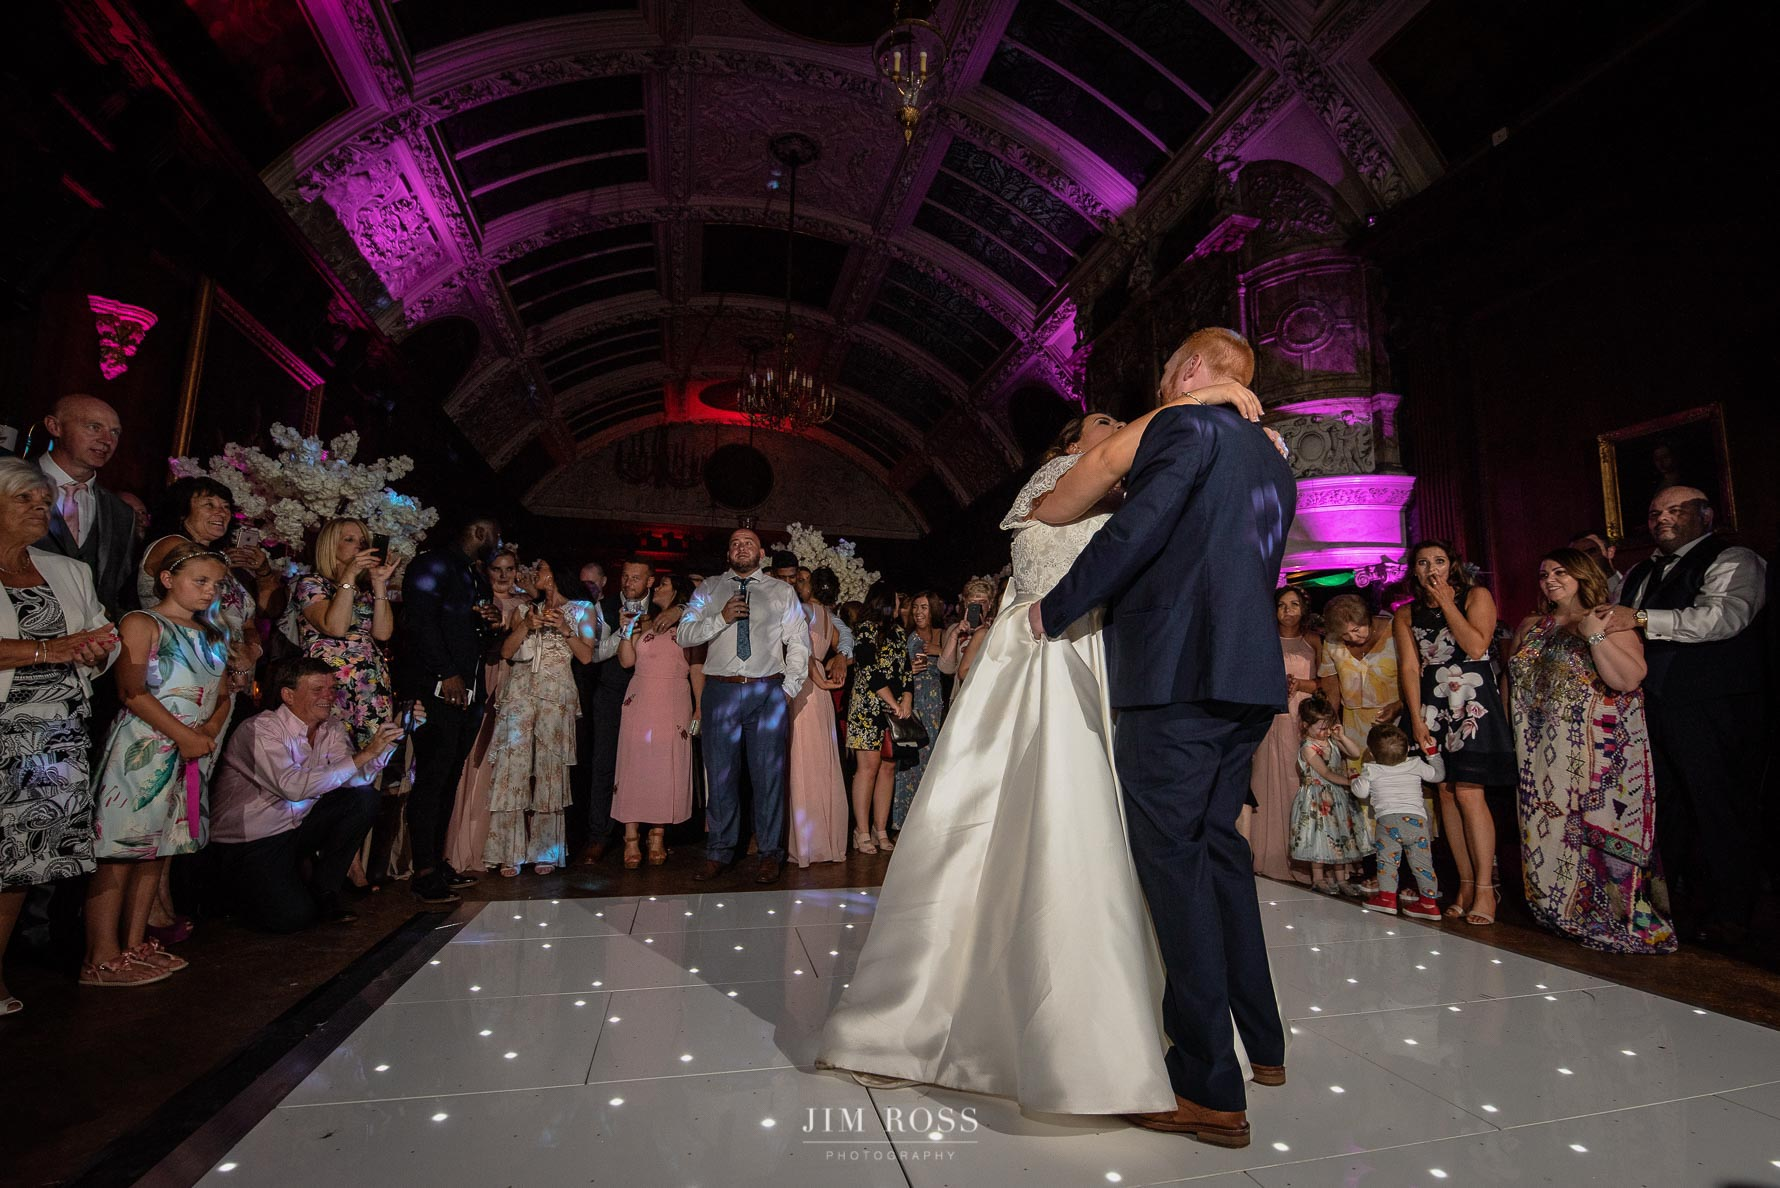 First dance in opulent grand room